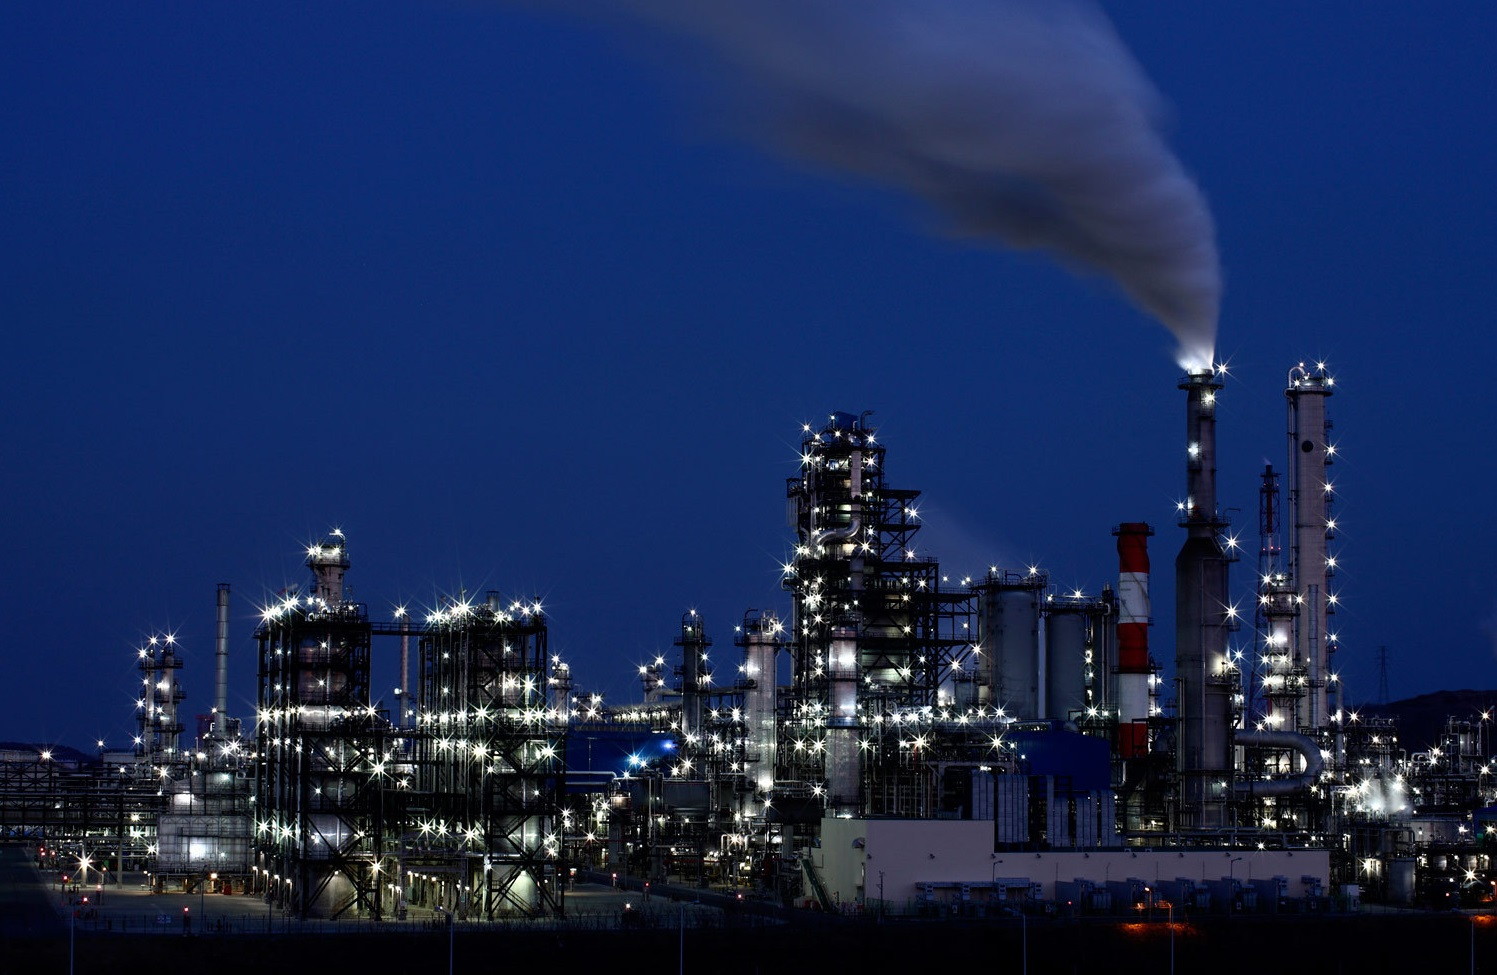 All risk policies for Oil, gas and refineries